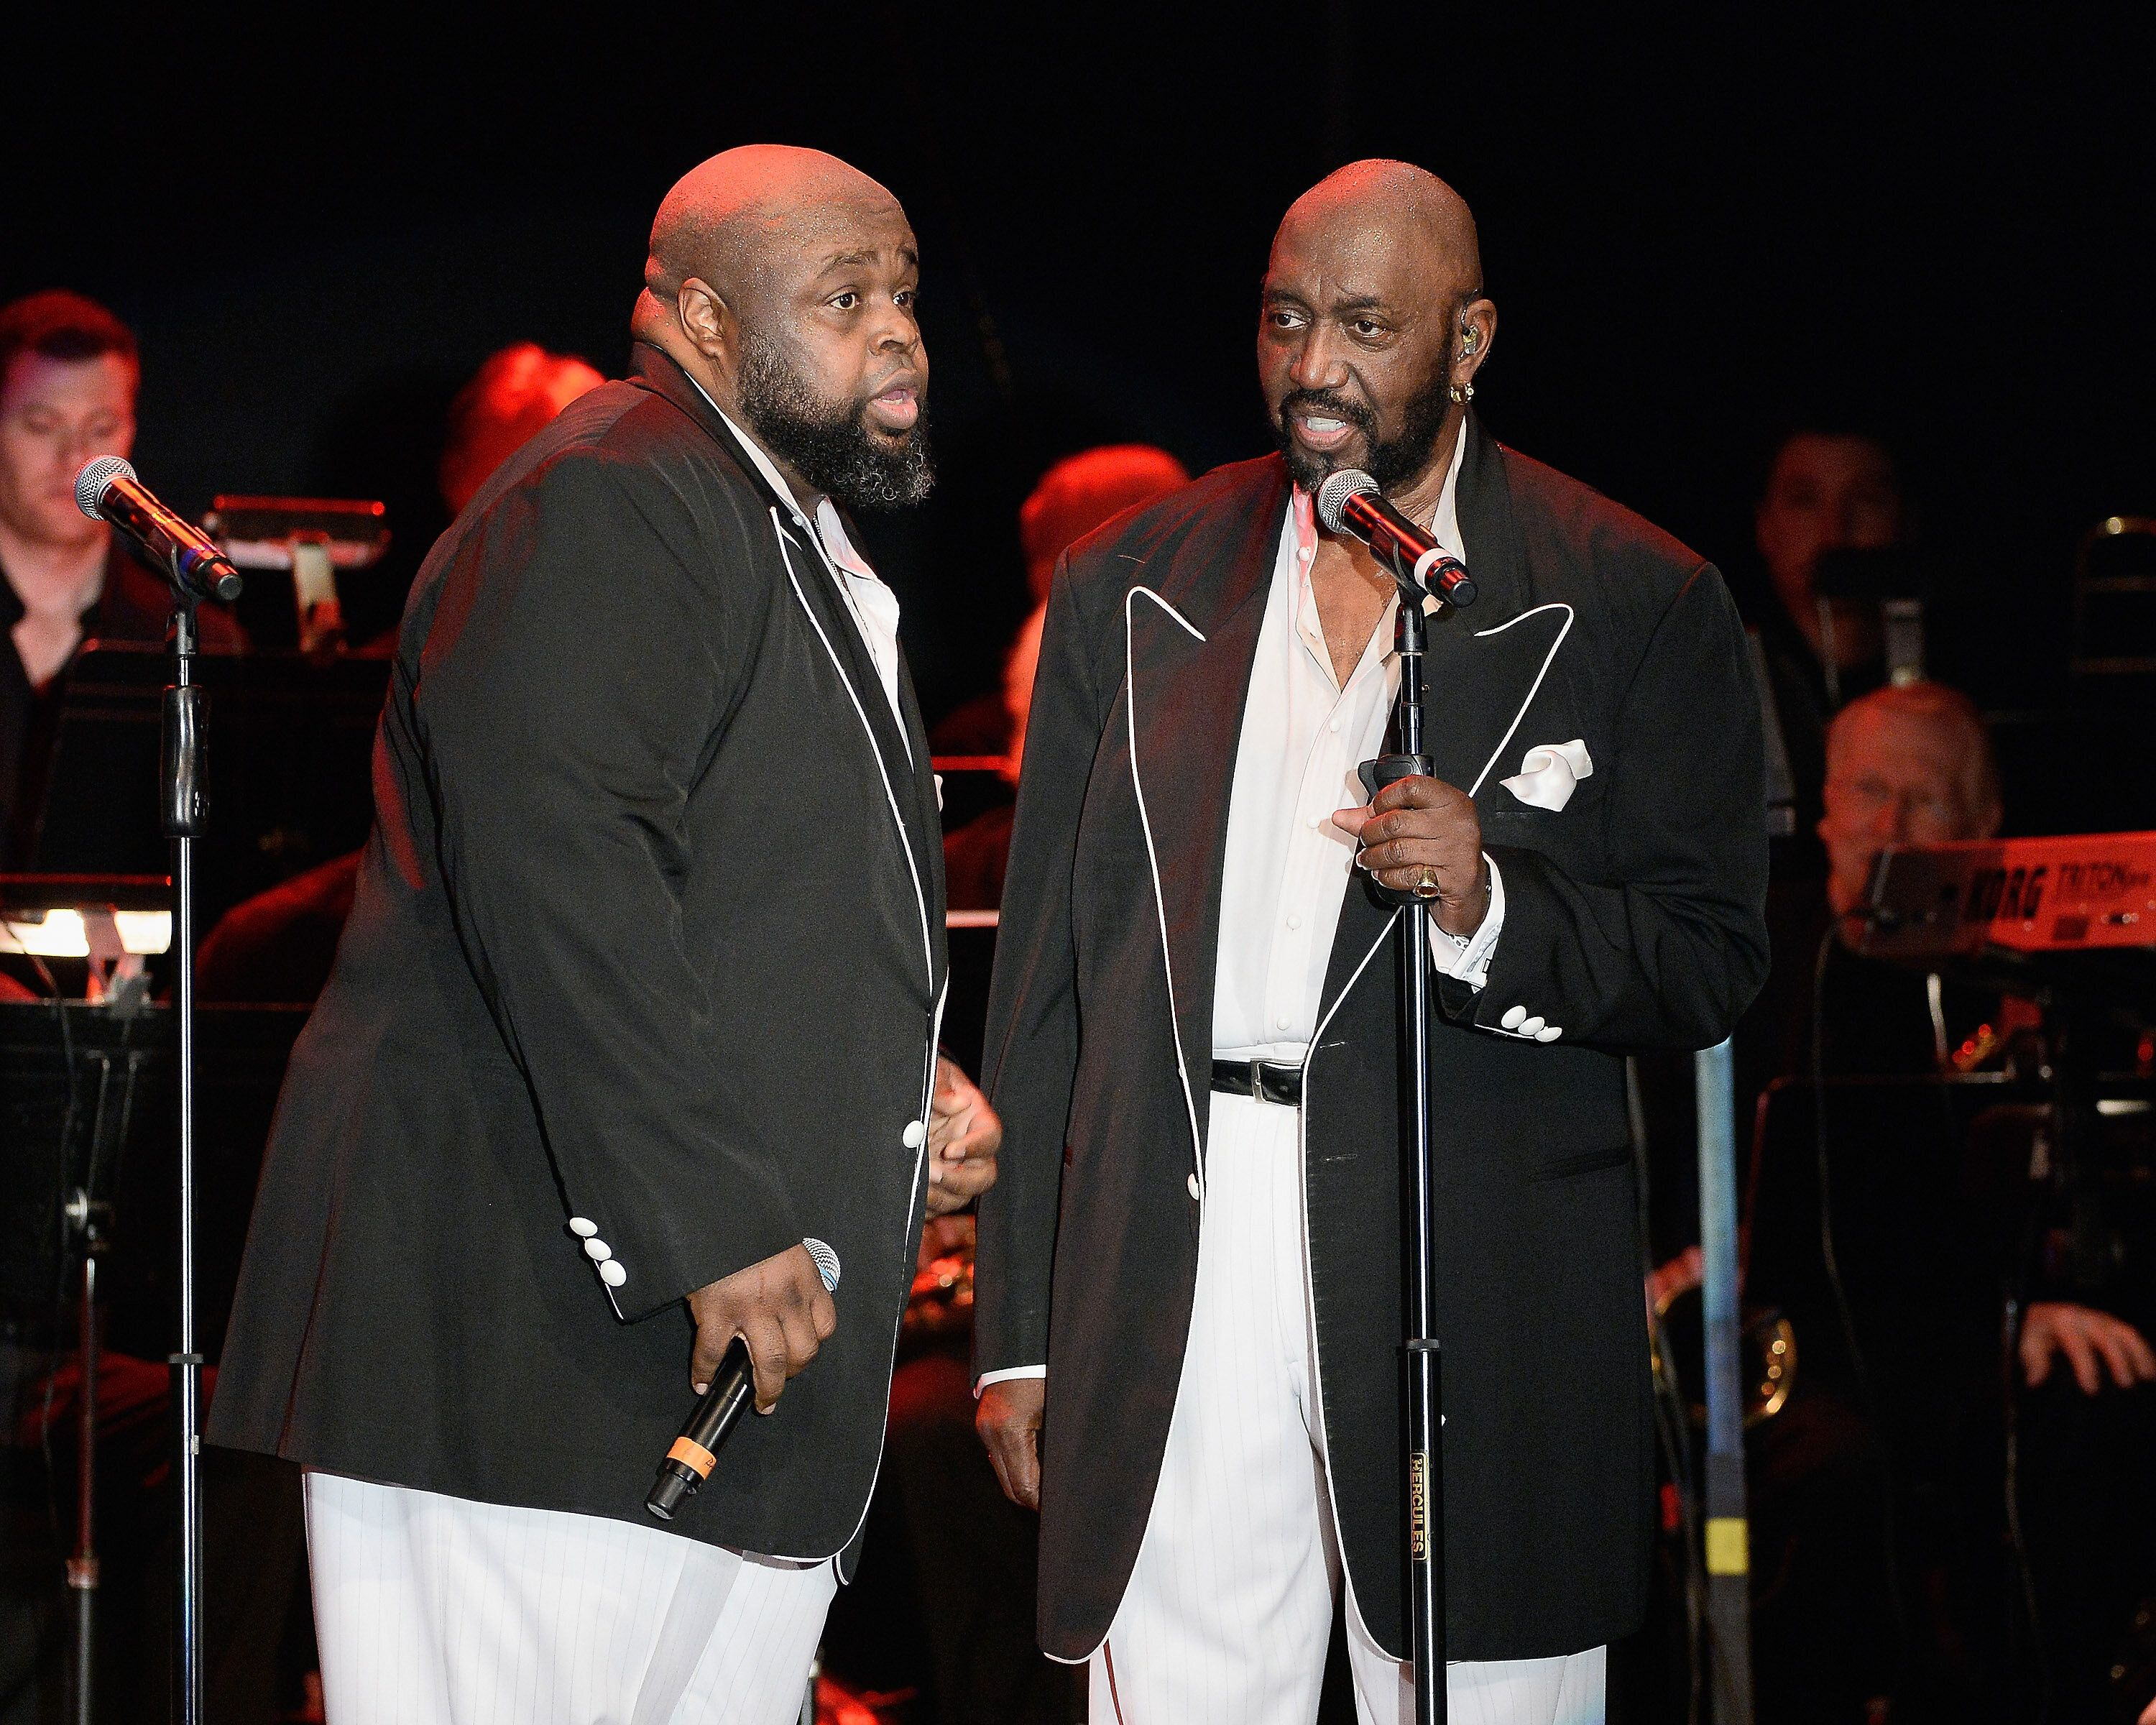 Musicians Bruce Williamson (L) and Otis Williams perform during The Temptations appearance at The Canyon Club on March 20, 2015 in Agoura Hills, California.